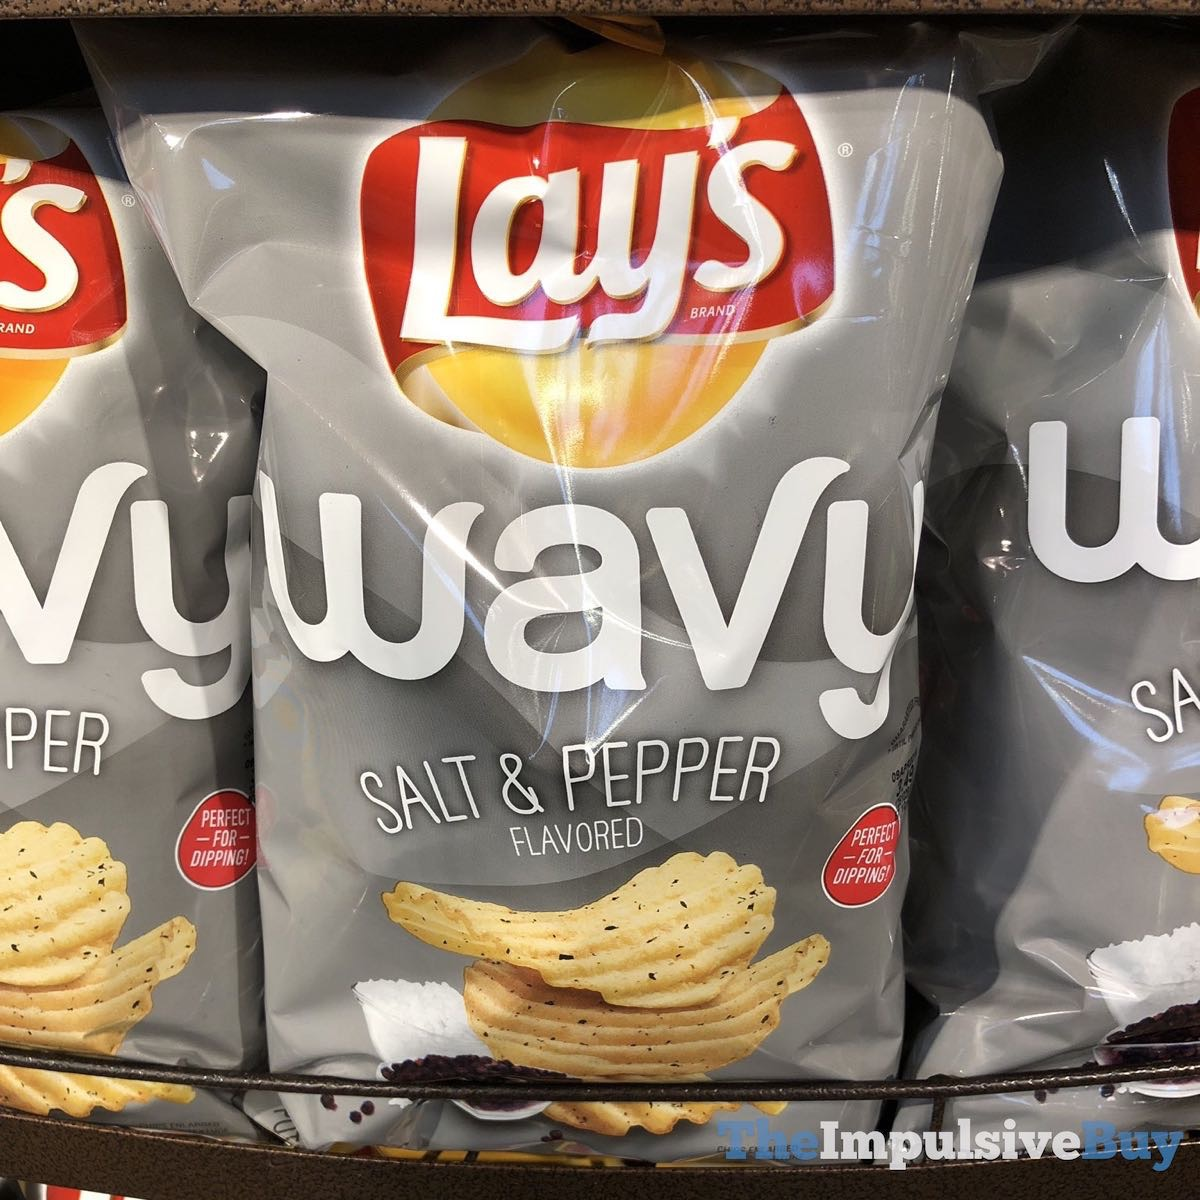 SPOTTED: Lay's Wavy Salt & Pepper Potato Chips - The